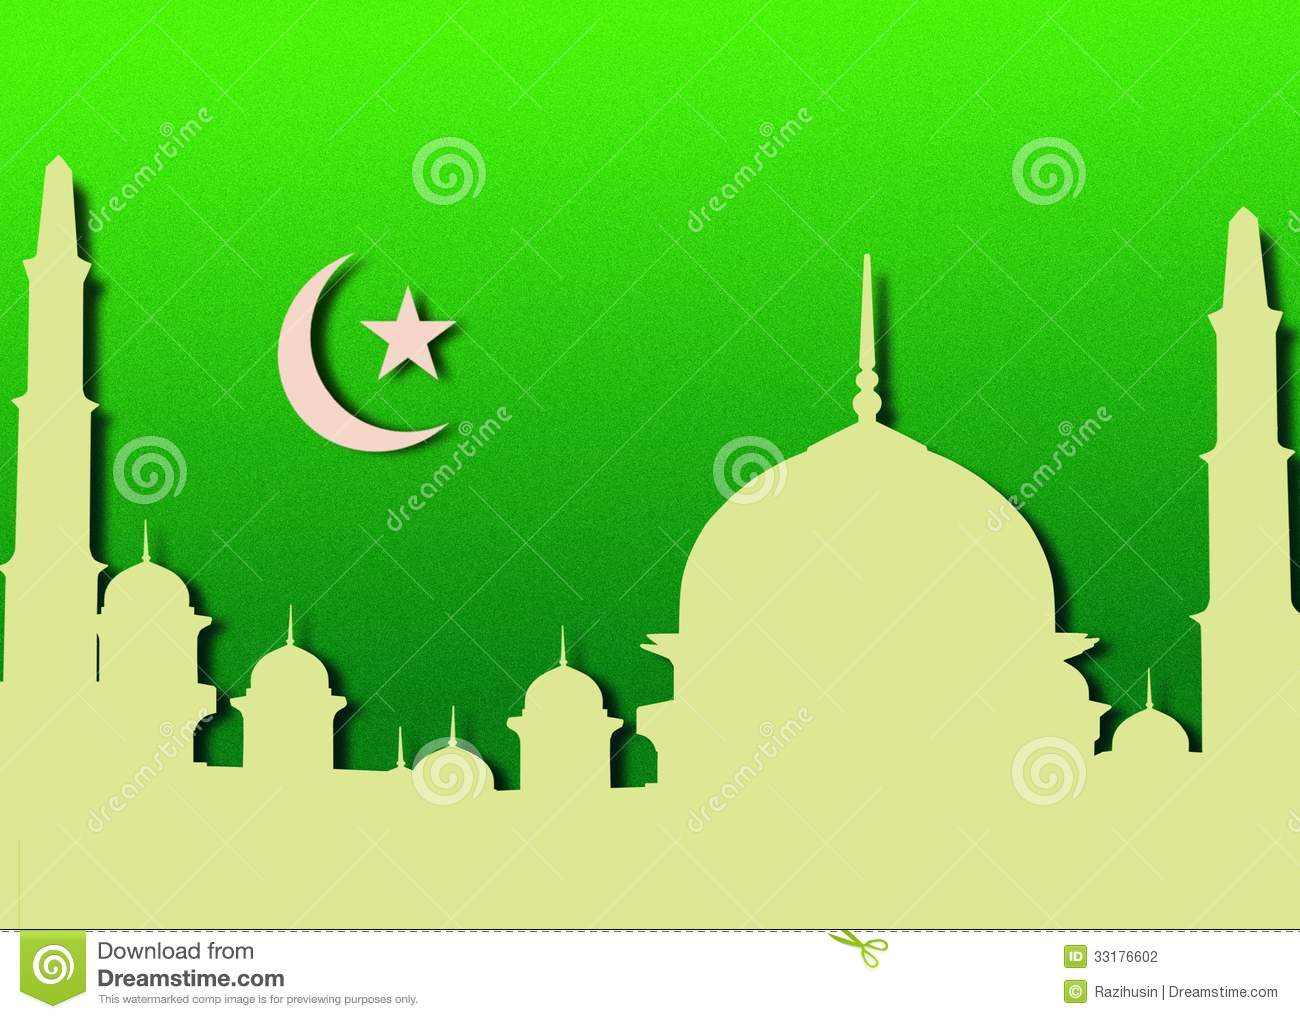 """star muslim Another popular symbol in islam is the shahadatain which means """"two shahadas"""" the shahada is the muslim statement of faith the shahadatain is more representative of islam than the star and crescent."""